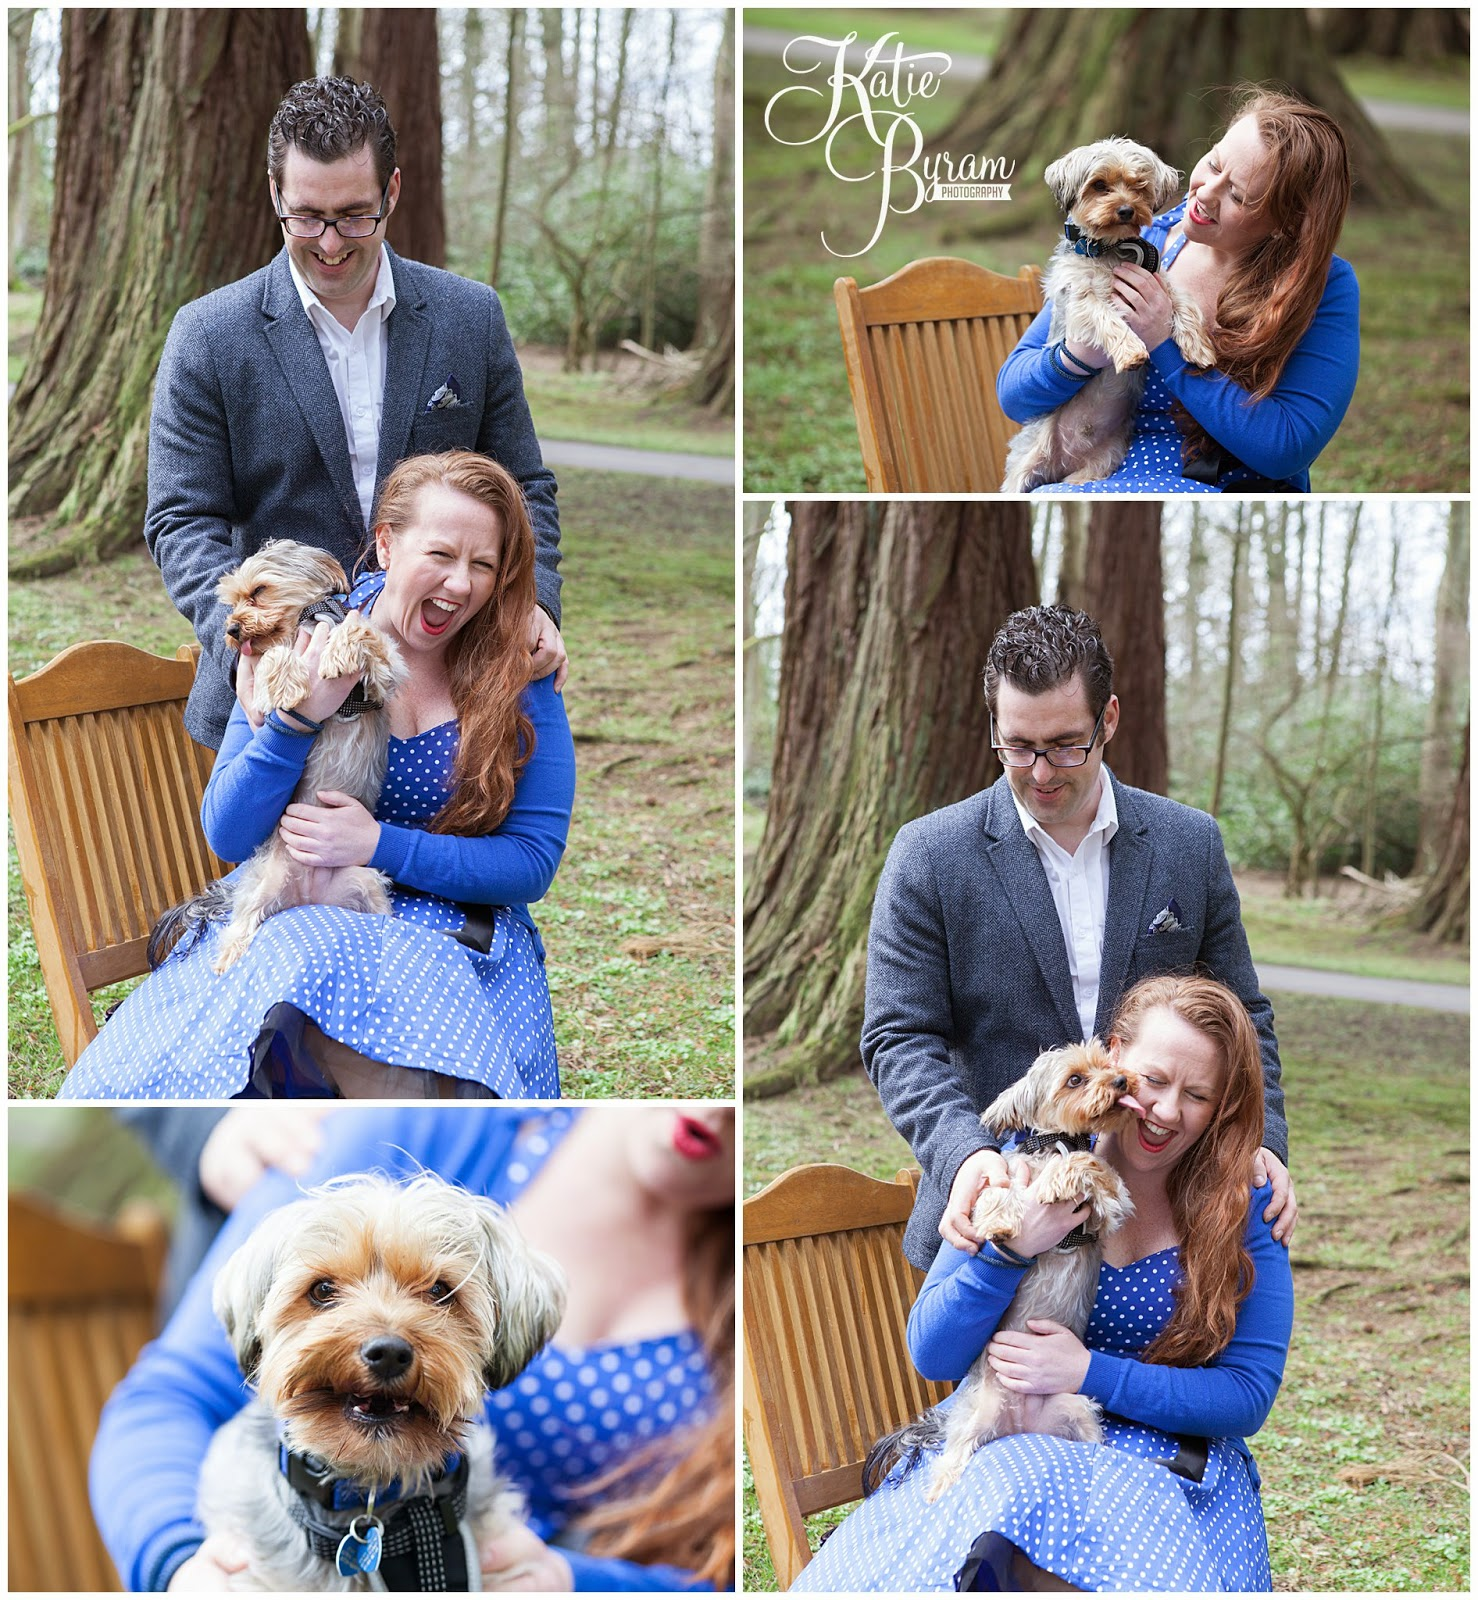 yorkshire terrier, dog at wedding, disney up engagement shoot, minsteracres wedding, lord crewe arms blanchland, northumberland wedding, quirky wedding photography, disney wedding, dogs at wedding